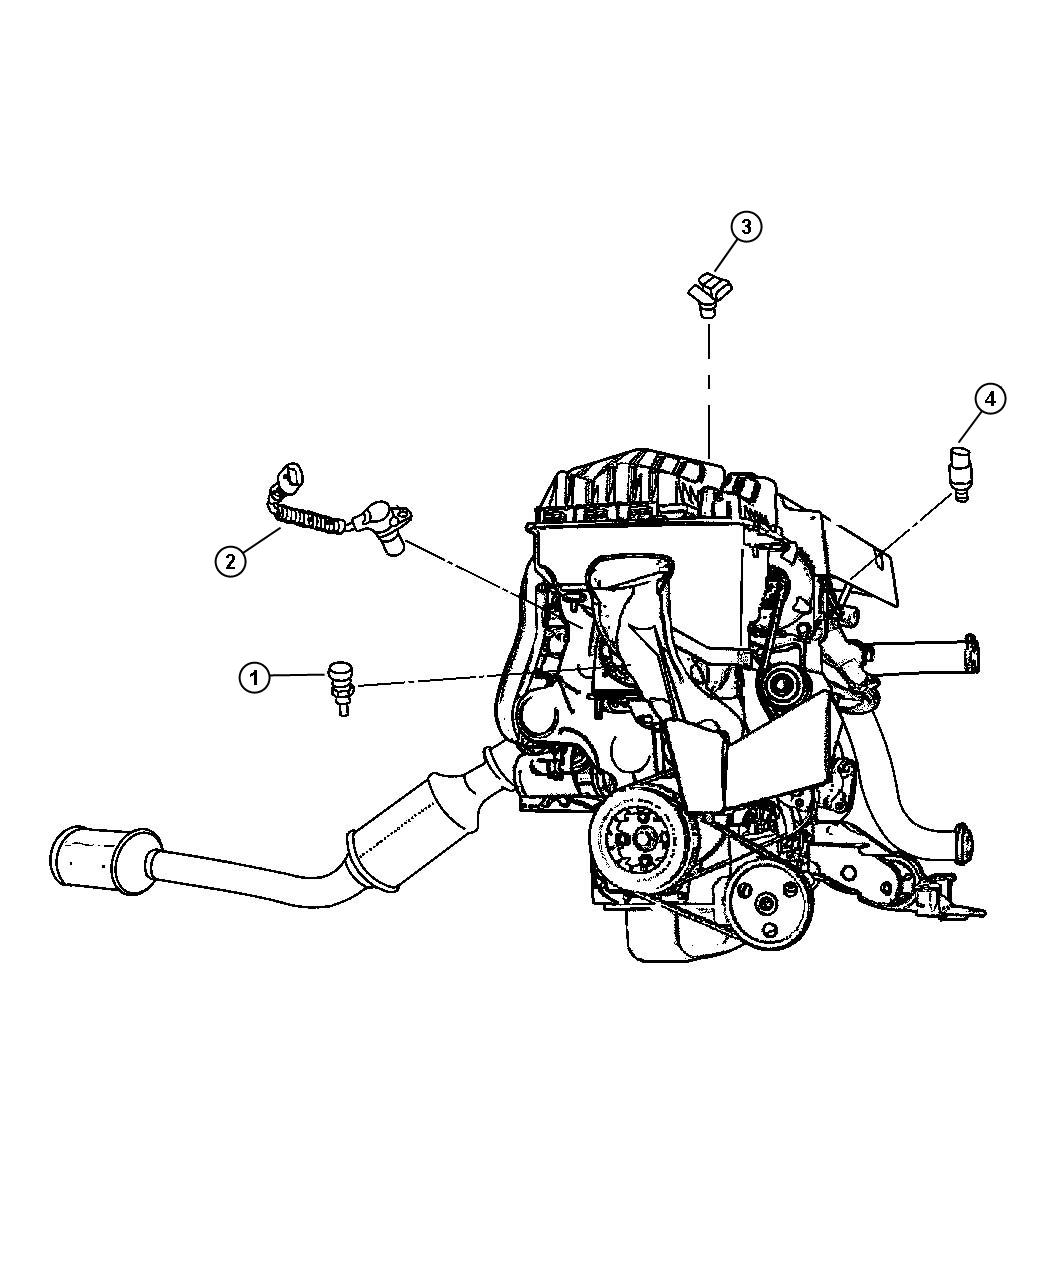 hight resolution of 1999 buick century 3 1 liter engine diagram besides 7d0sx chevrolet impala need